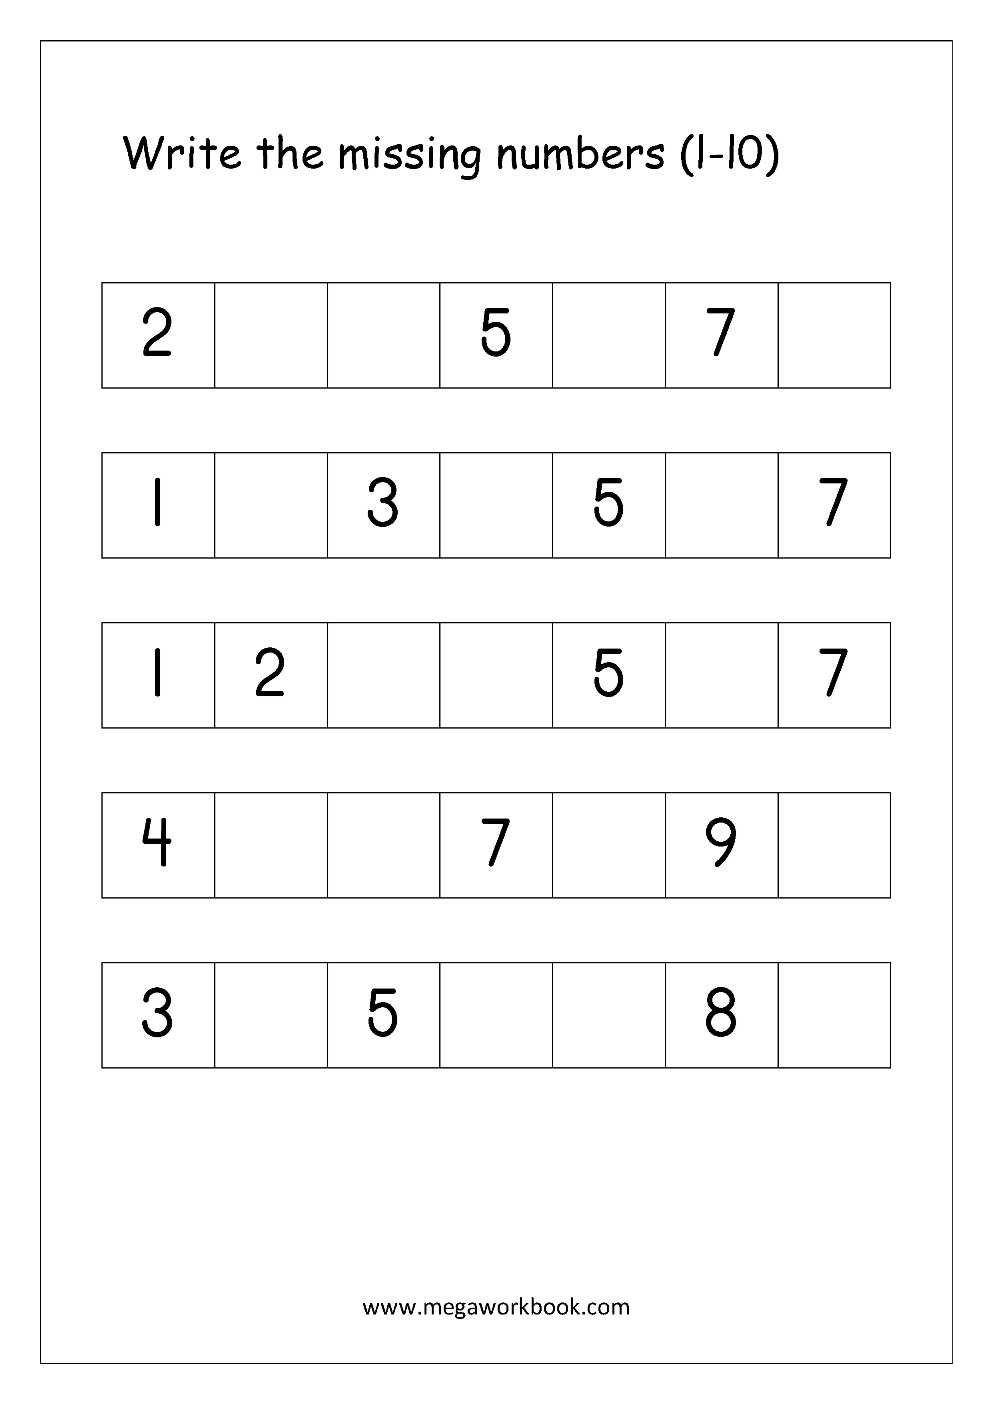 Free Printable Number Order Worksheets Missing Numbers 1 10 1 20